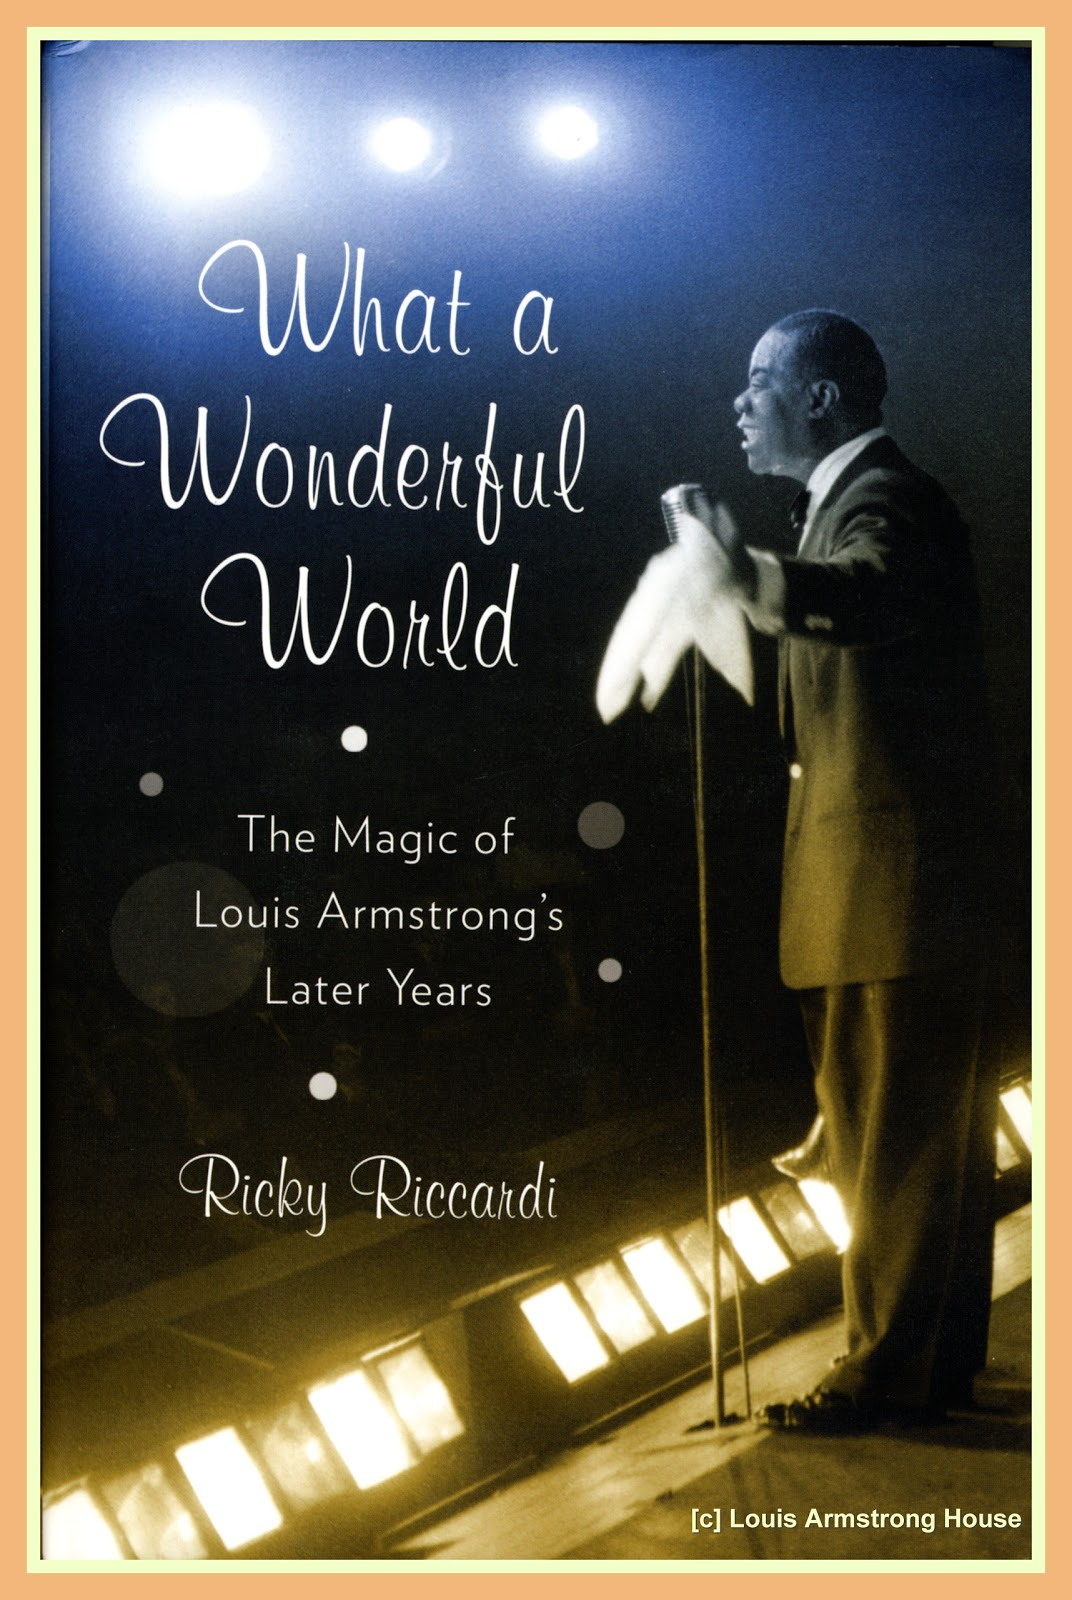 Jazz Profiles Ricky Riccardi An Interview With The Author Of What A Wonderful World The